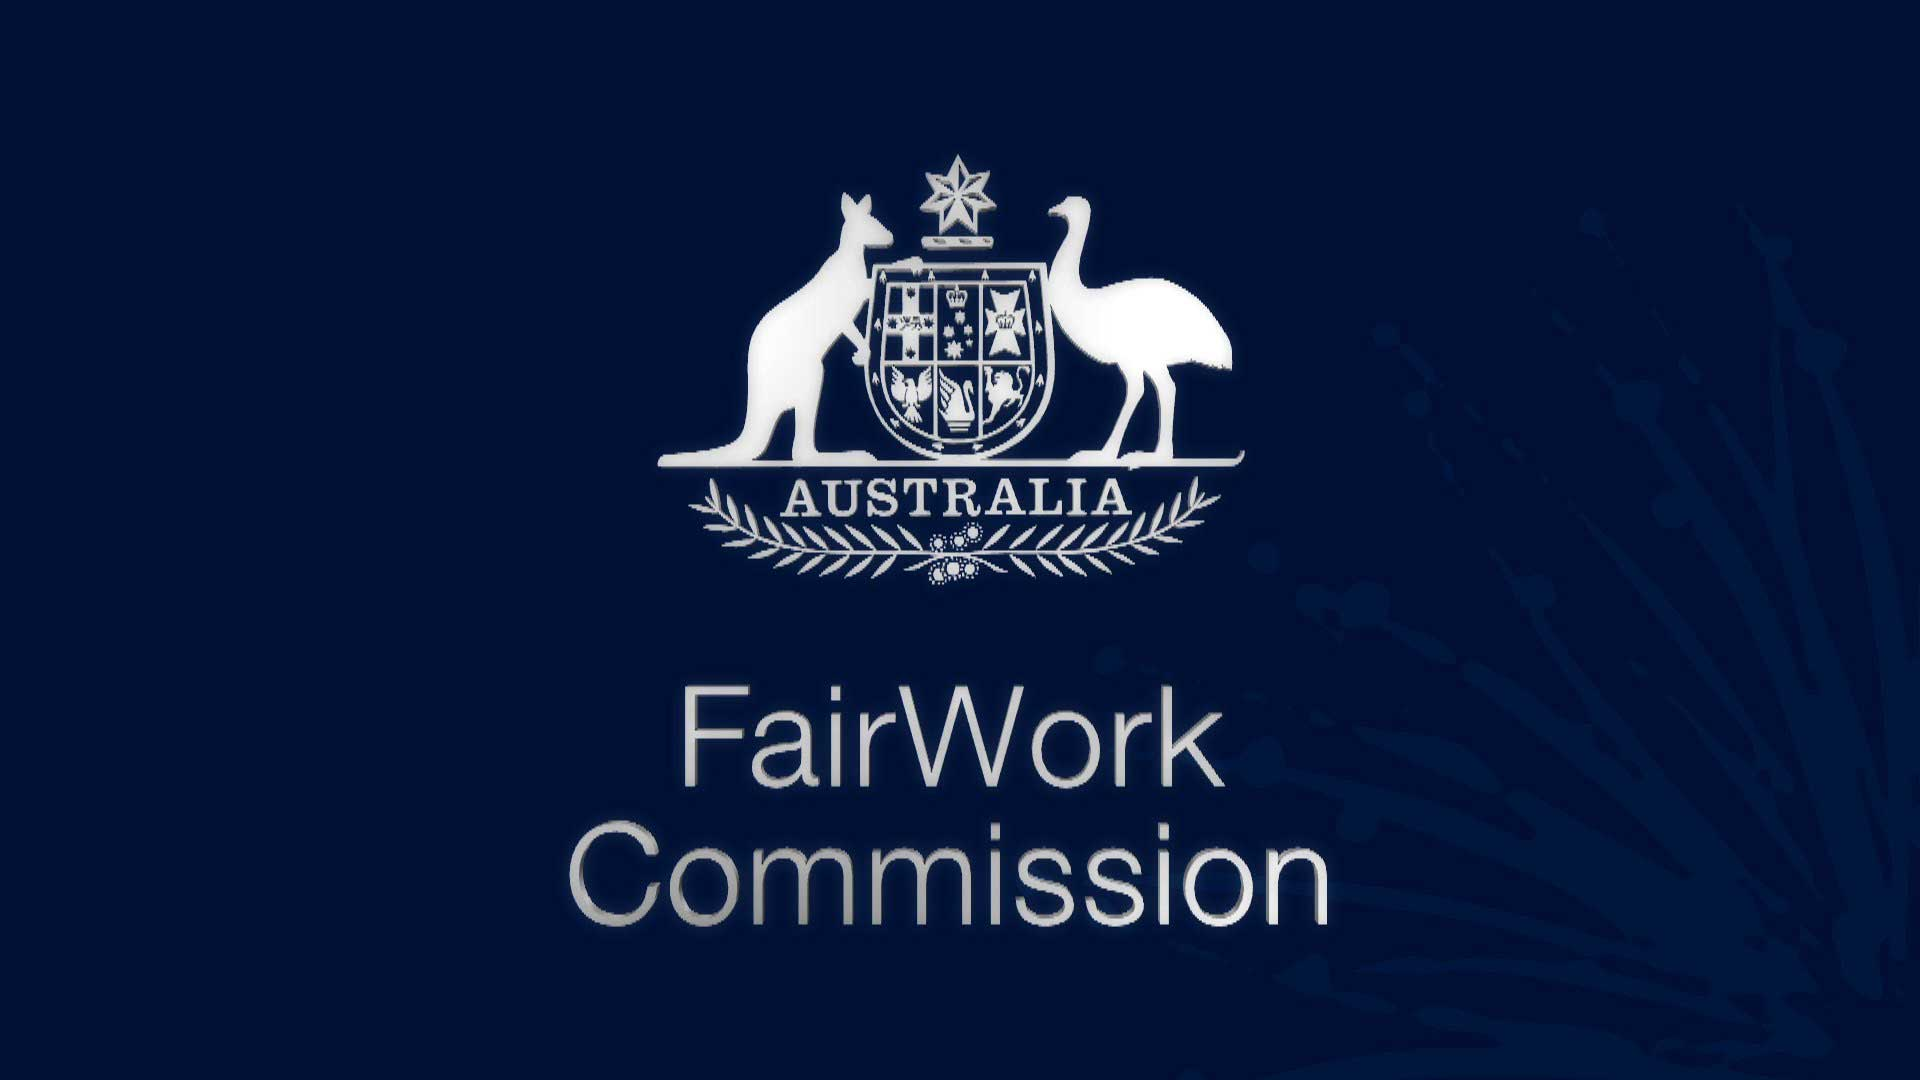 FairWork Commission